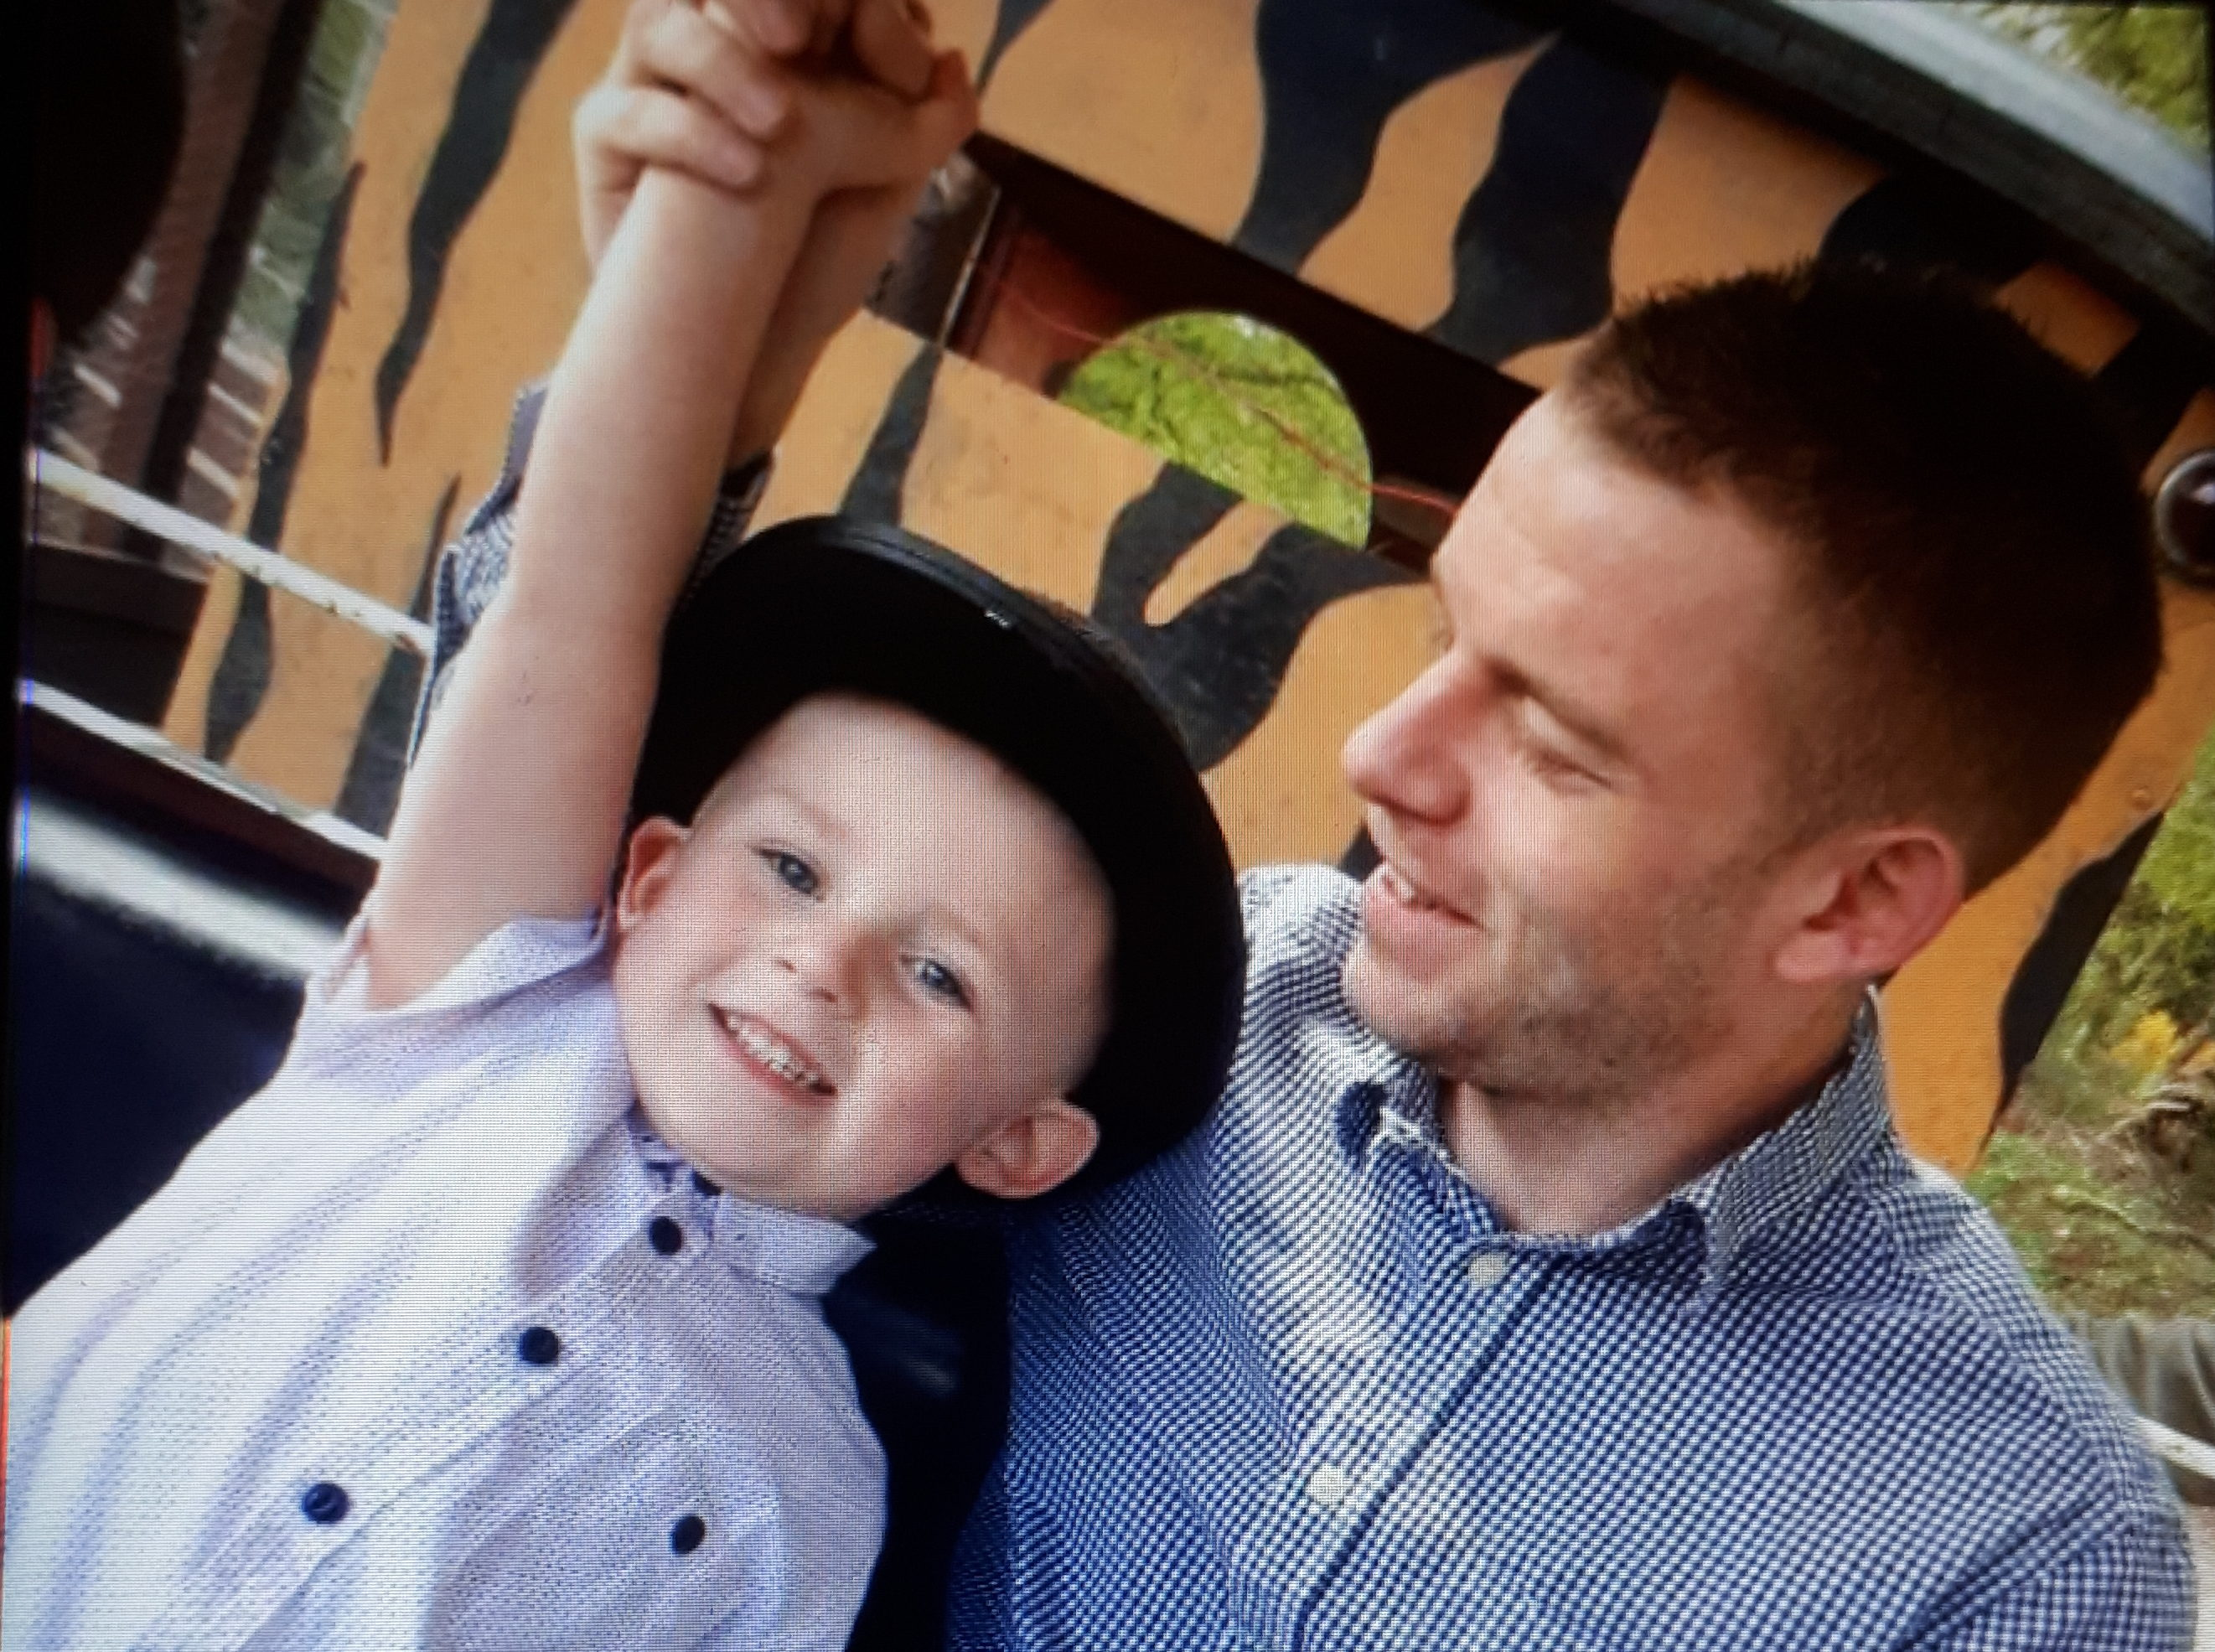 James Lynagh and his 8-year-old son Riley.